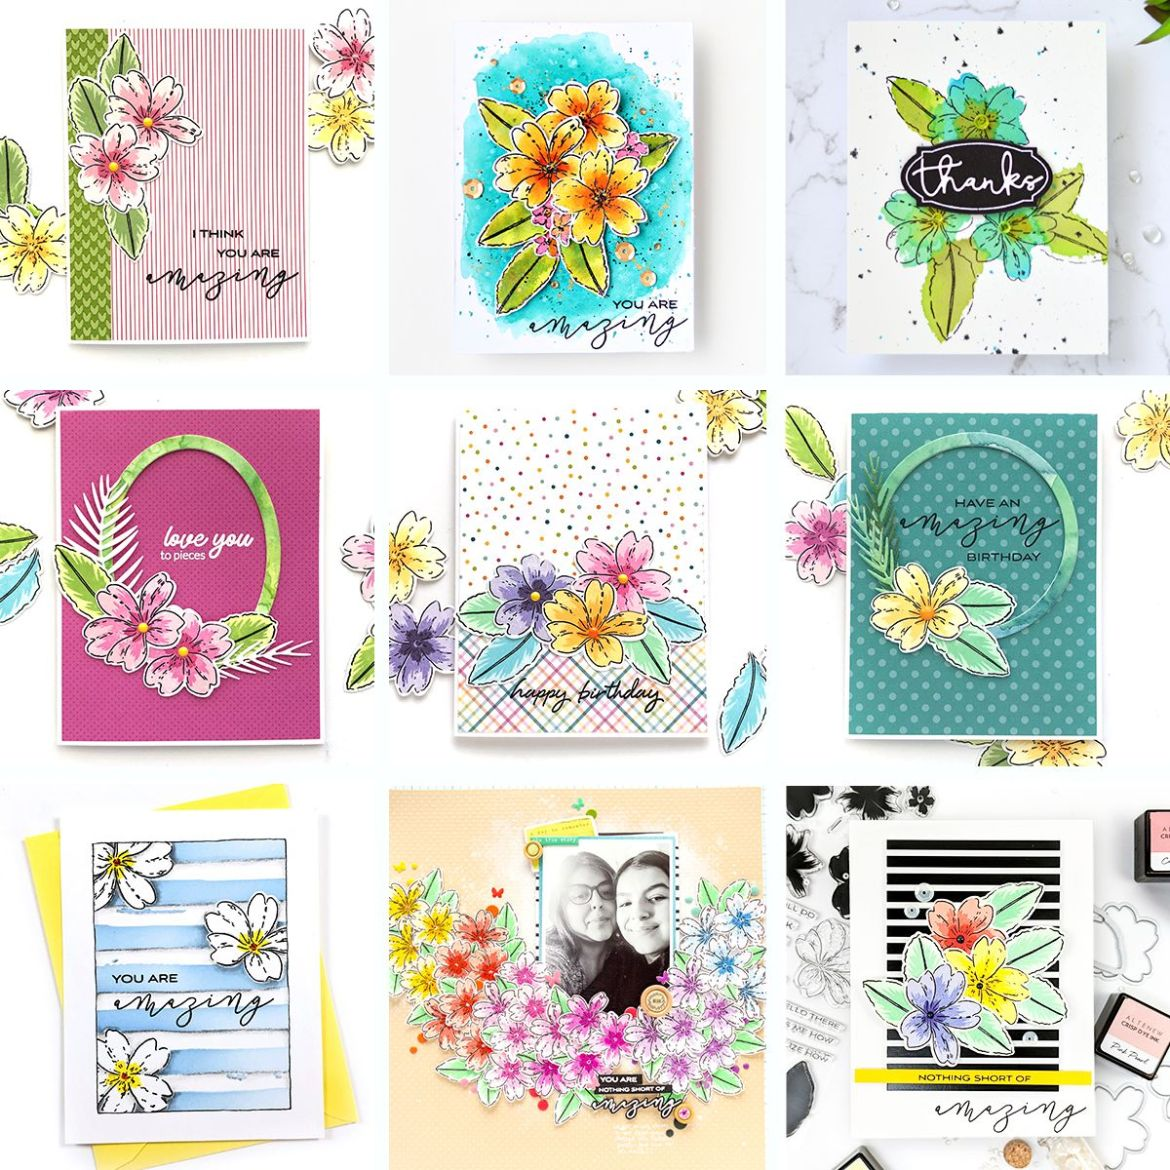 Beautiful Handmade Floral Cards Using Build-A-Flower Layering Stamps by Altenew Designers